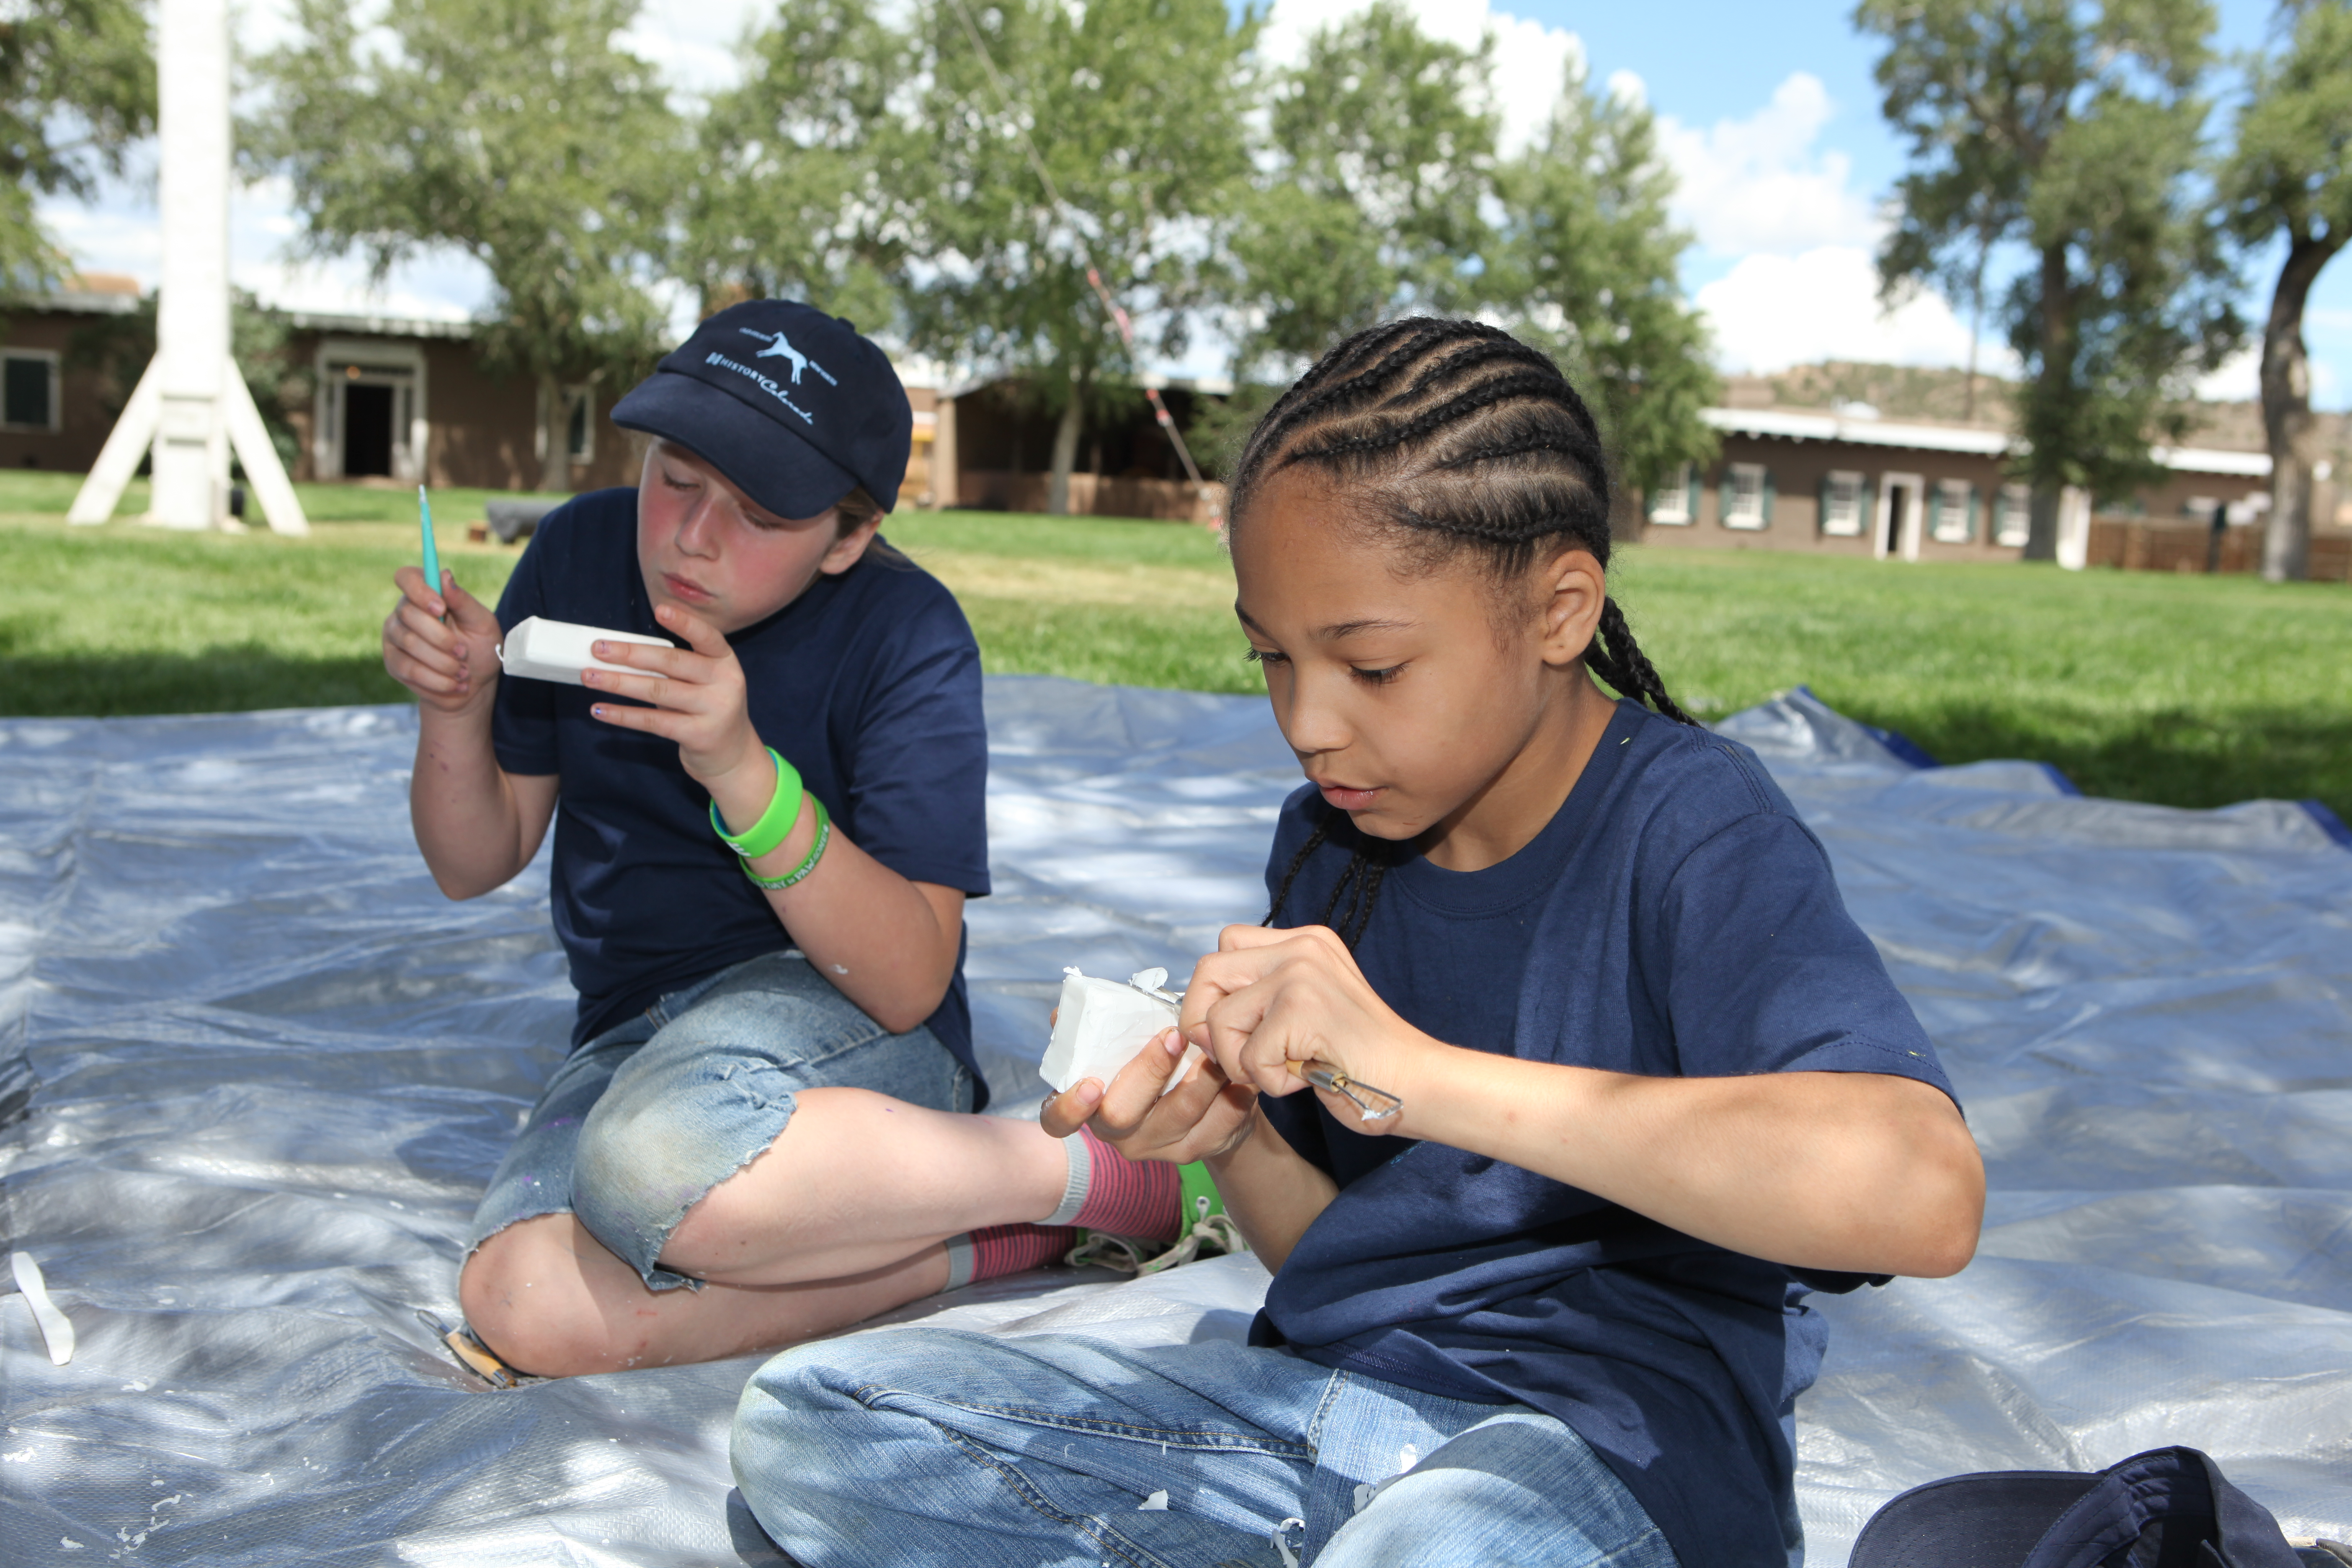 Kids soap carving at Fort Garland